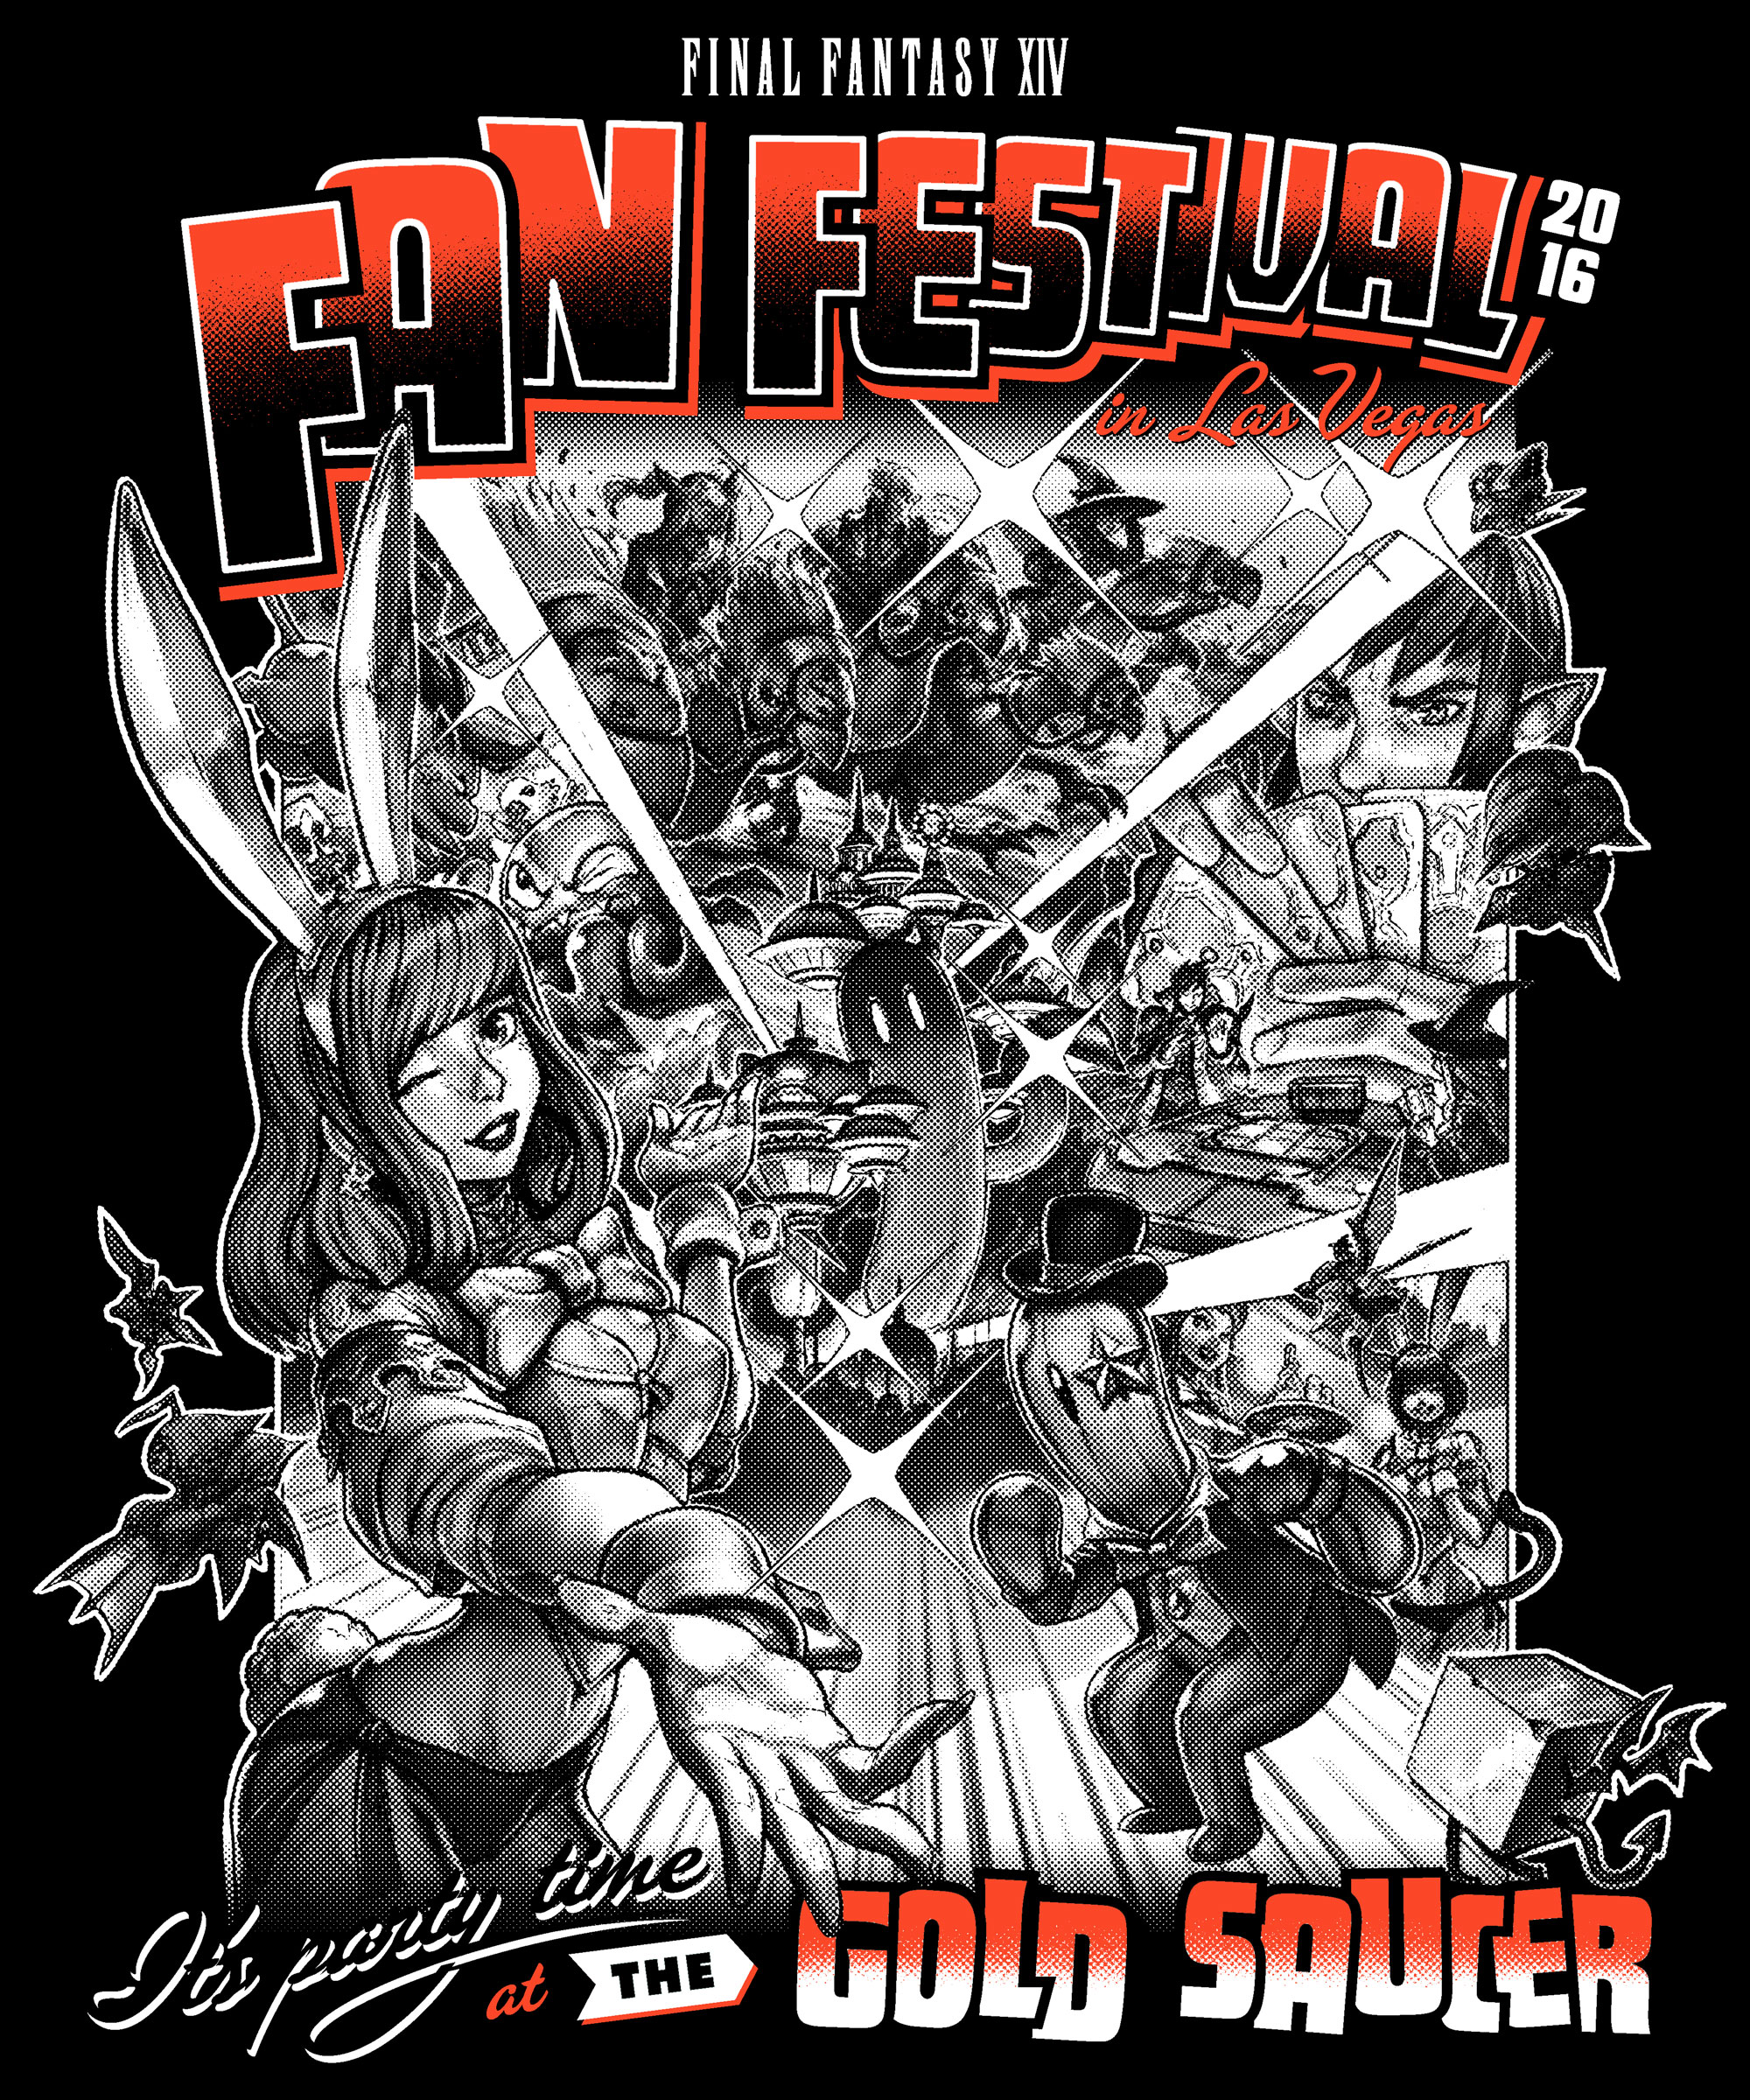 Final Fantasy Fan Fest 2016 Gold Saucer shirt